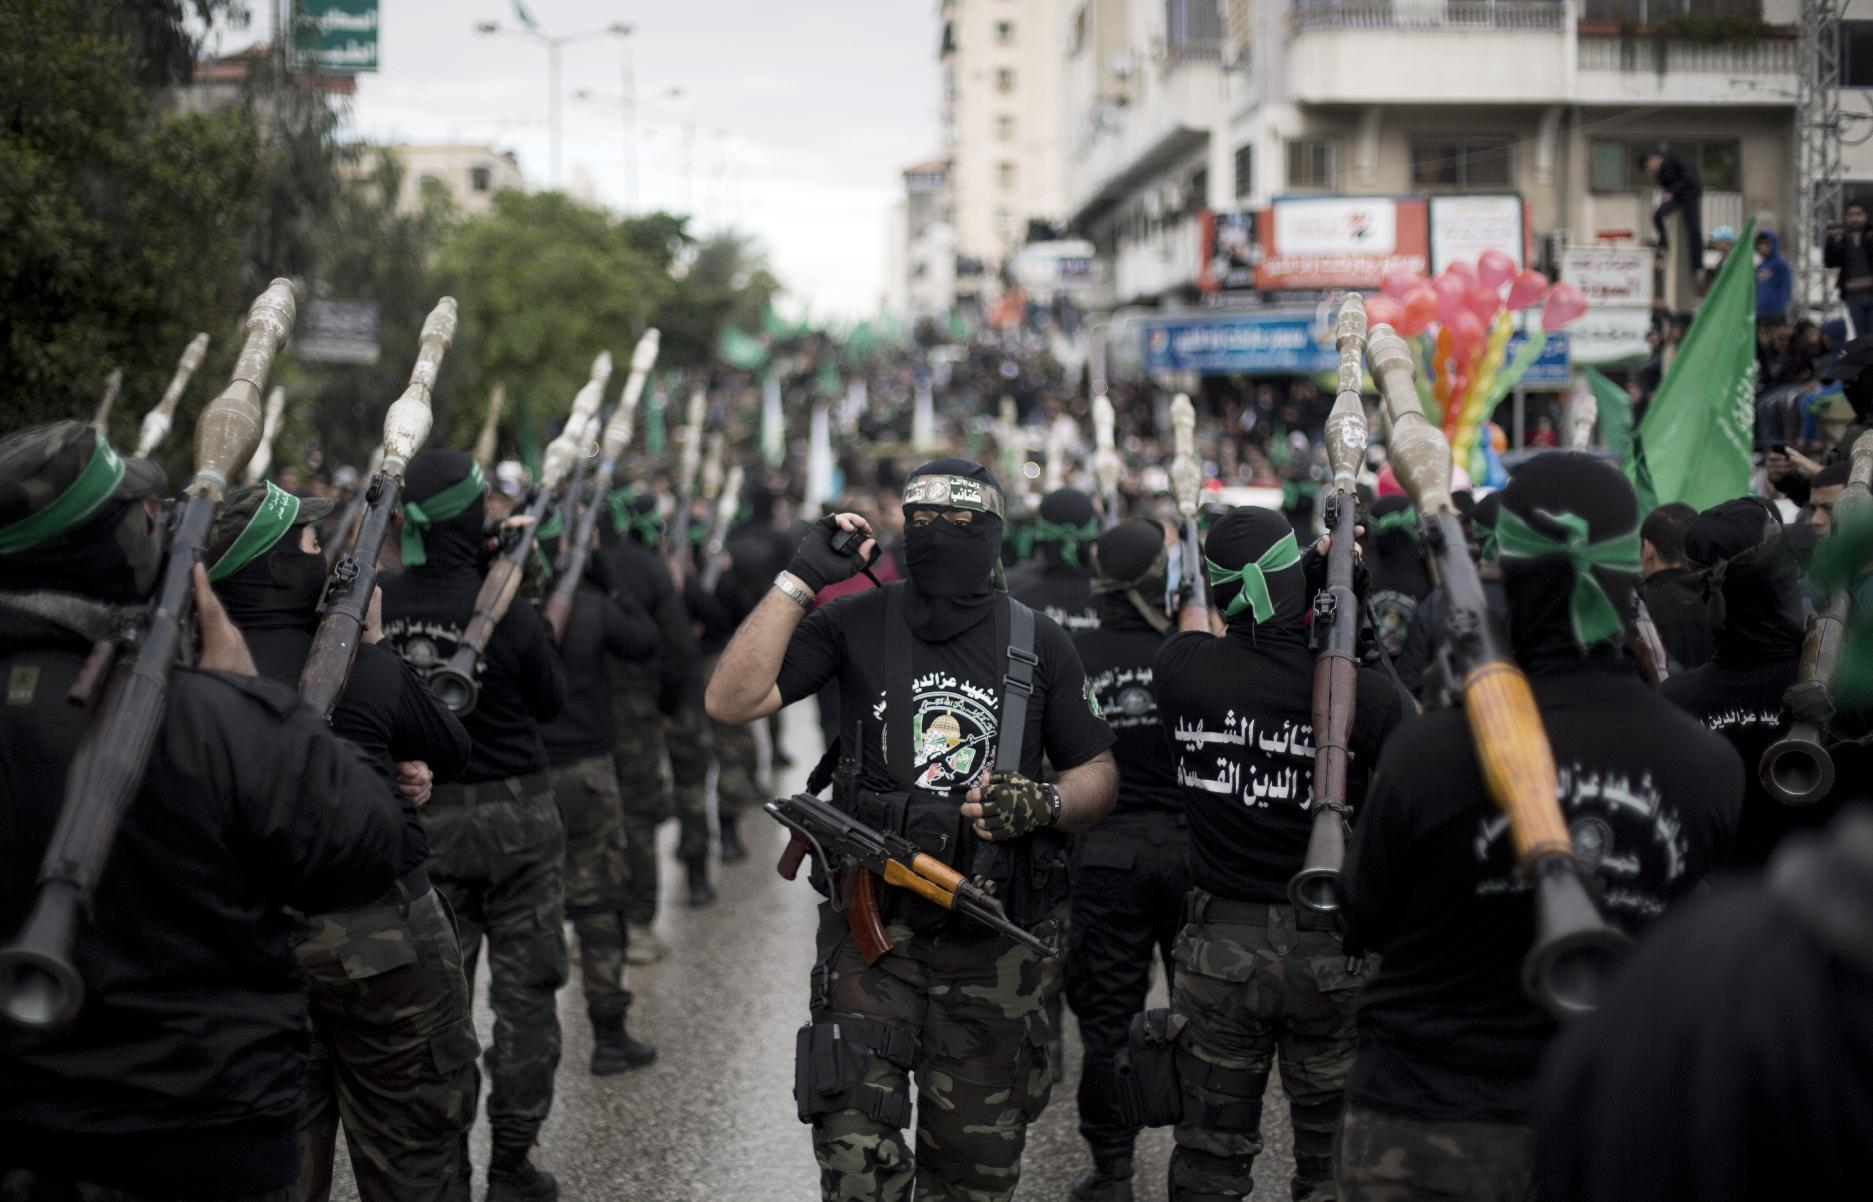 Group: Hamas tortured, killed Palestinians in 2014 Gaza war